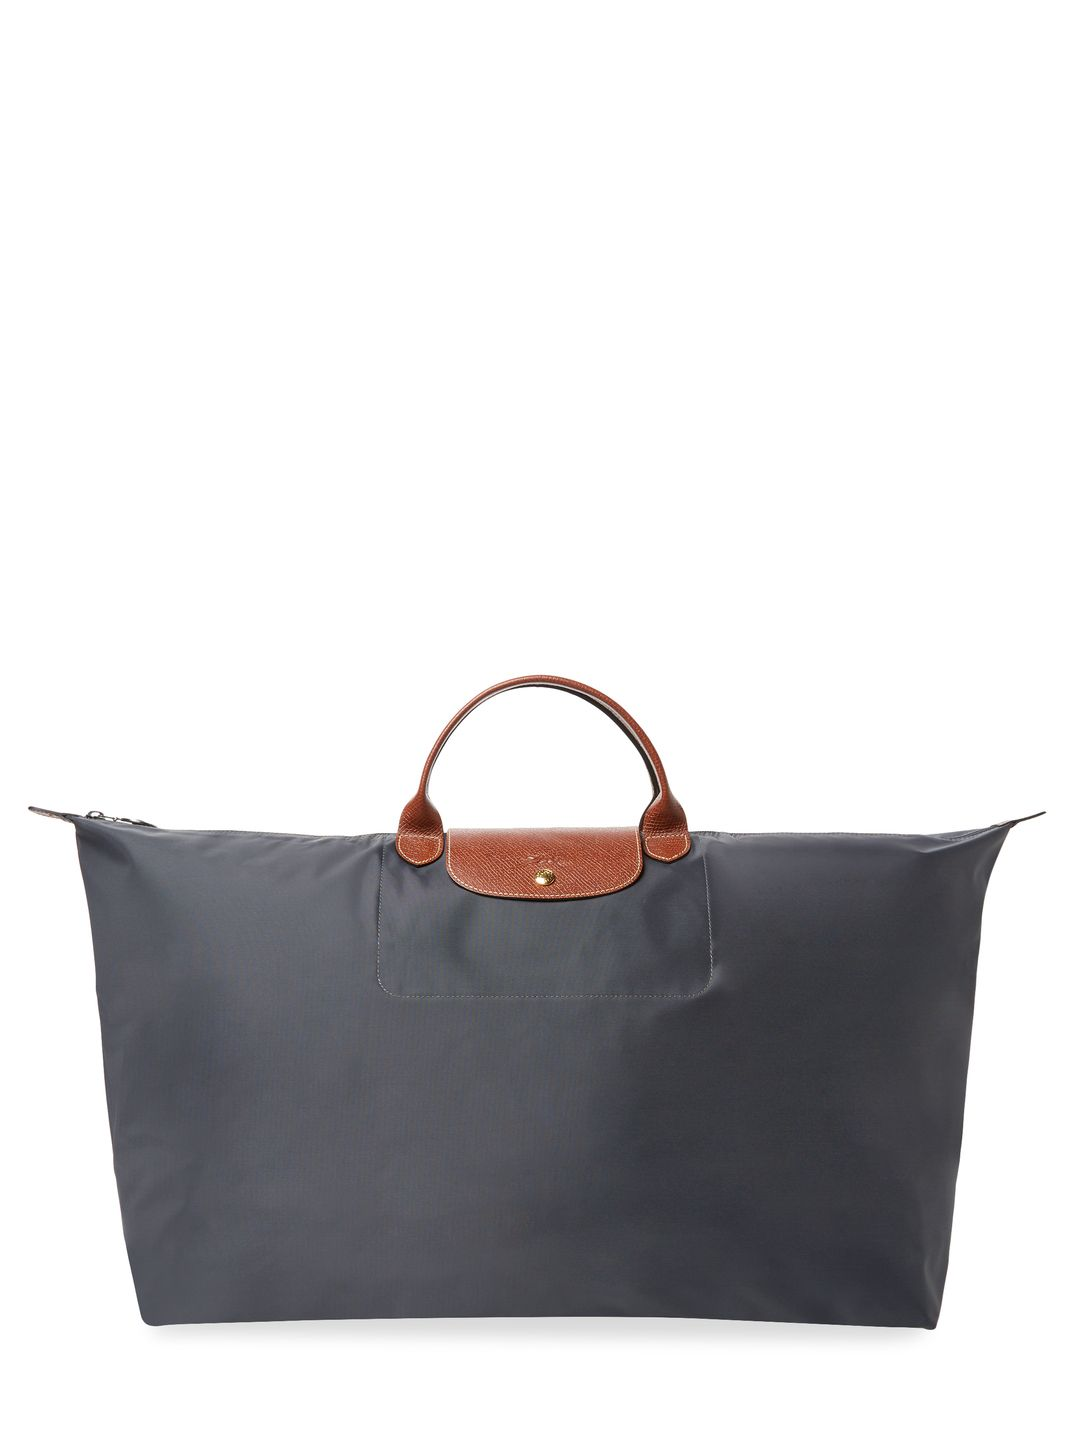 Longchamp Le Pliage Nylon Extra Large Travel Tote Bags Leather